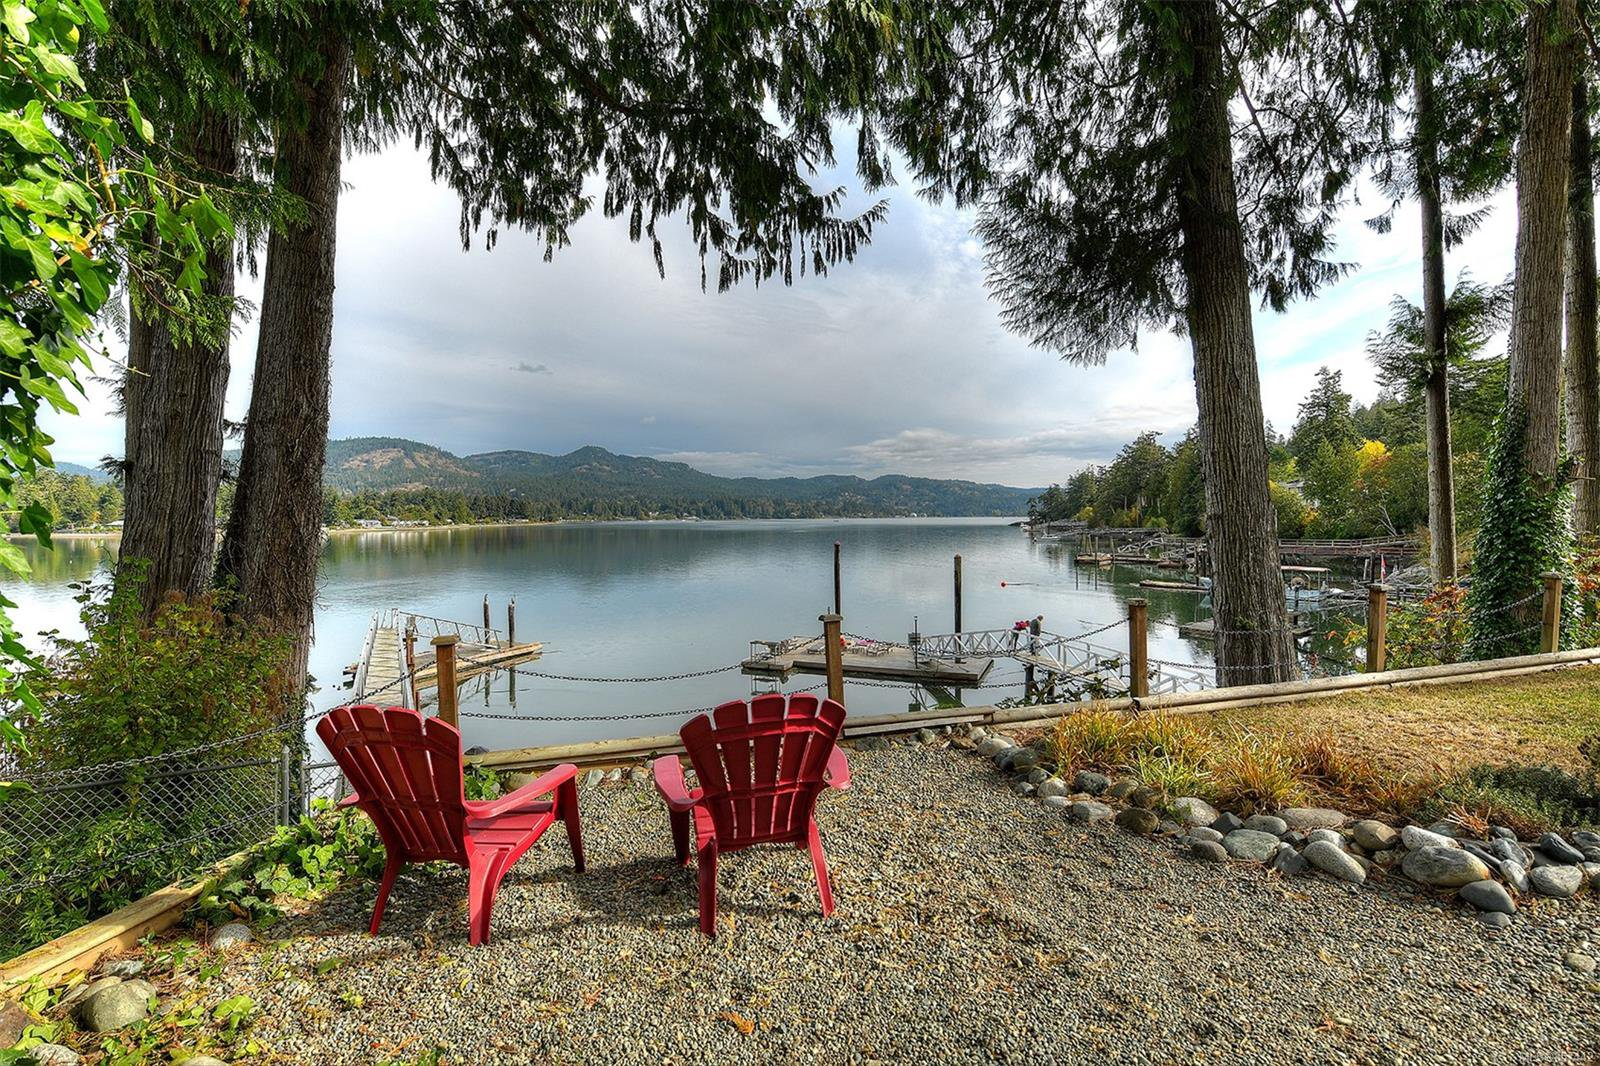 Main Photo: 6460 East Sooke Rd in : Sk East Sooke House for sale (Sooke)  : MLS®# 857442